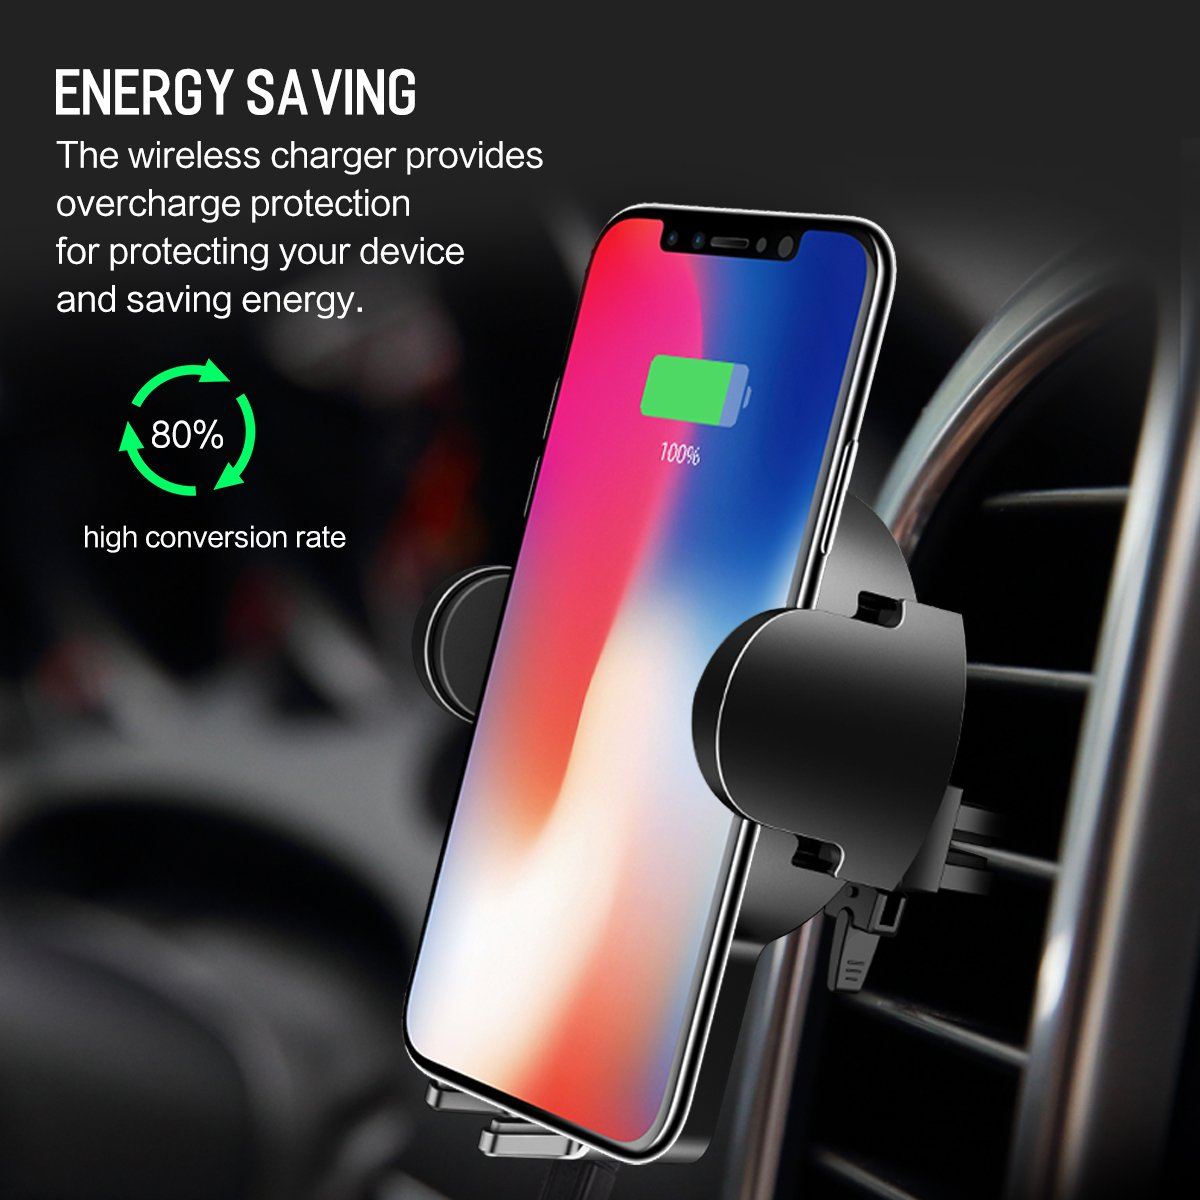 Samsung Galaxy S8 Cell Phone Holder for Car Note 8 5 /& Qi Enabled Devices More/&Better 4351483446 Qi Wireless Fast Charge Car Phone Mount Charger for iPhone X S7//S7 Edge iPhone 8 Plus